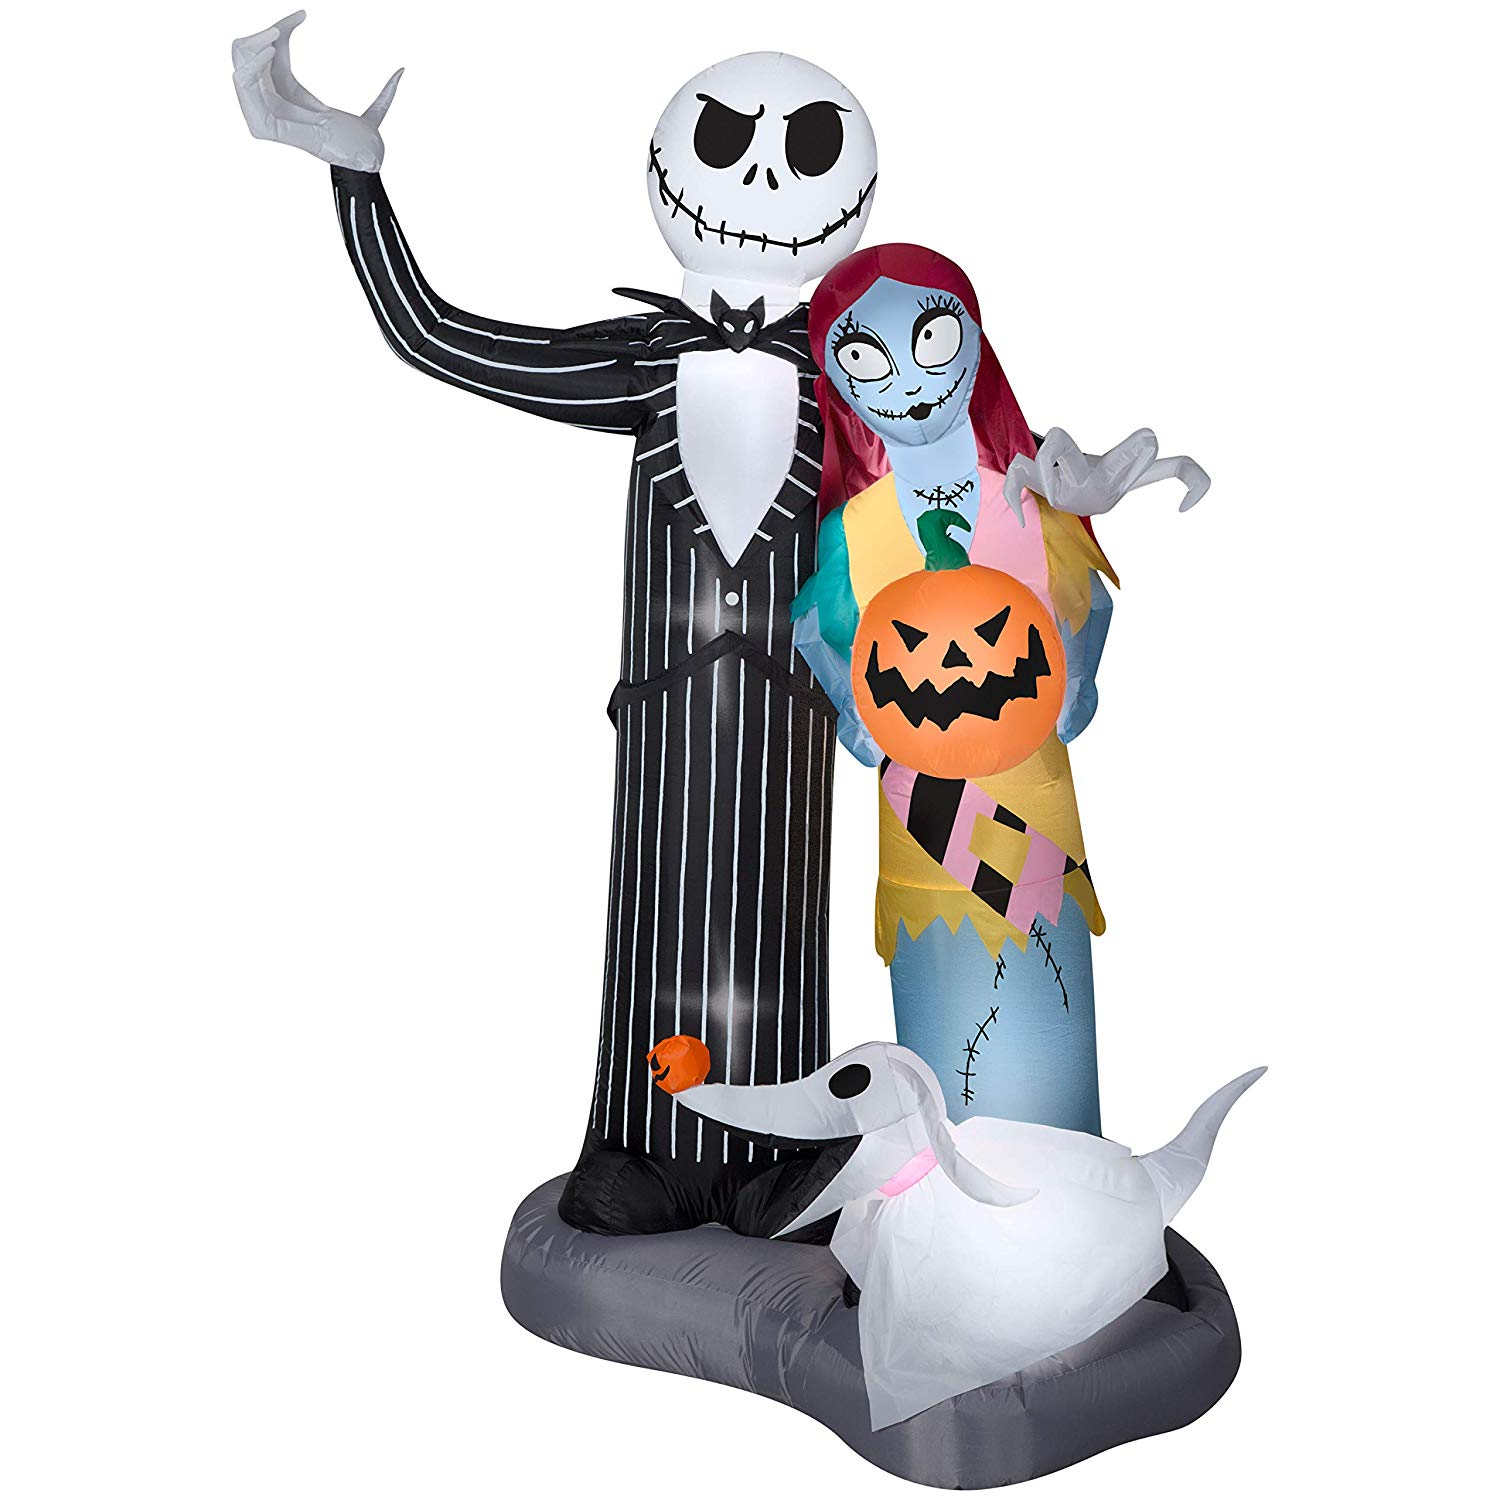 6ft Tall Halloween Airblown Inflatable Nightmare Before Christmas Scene